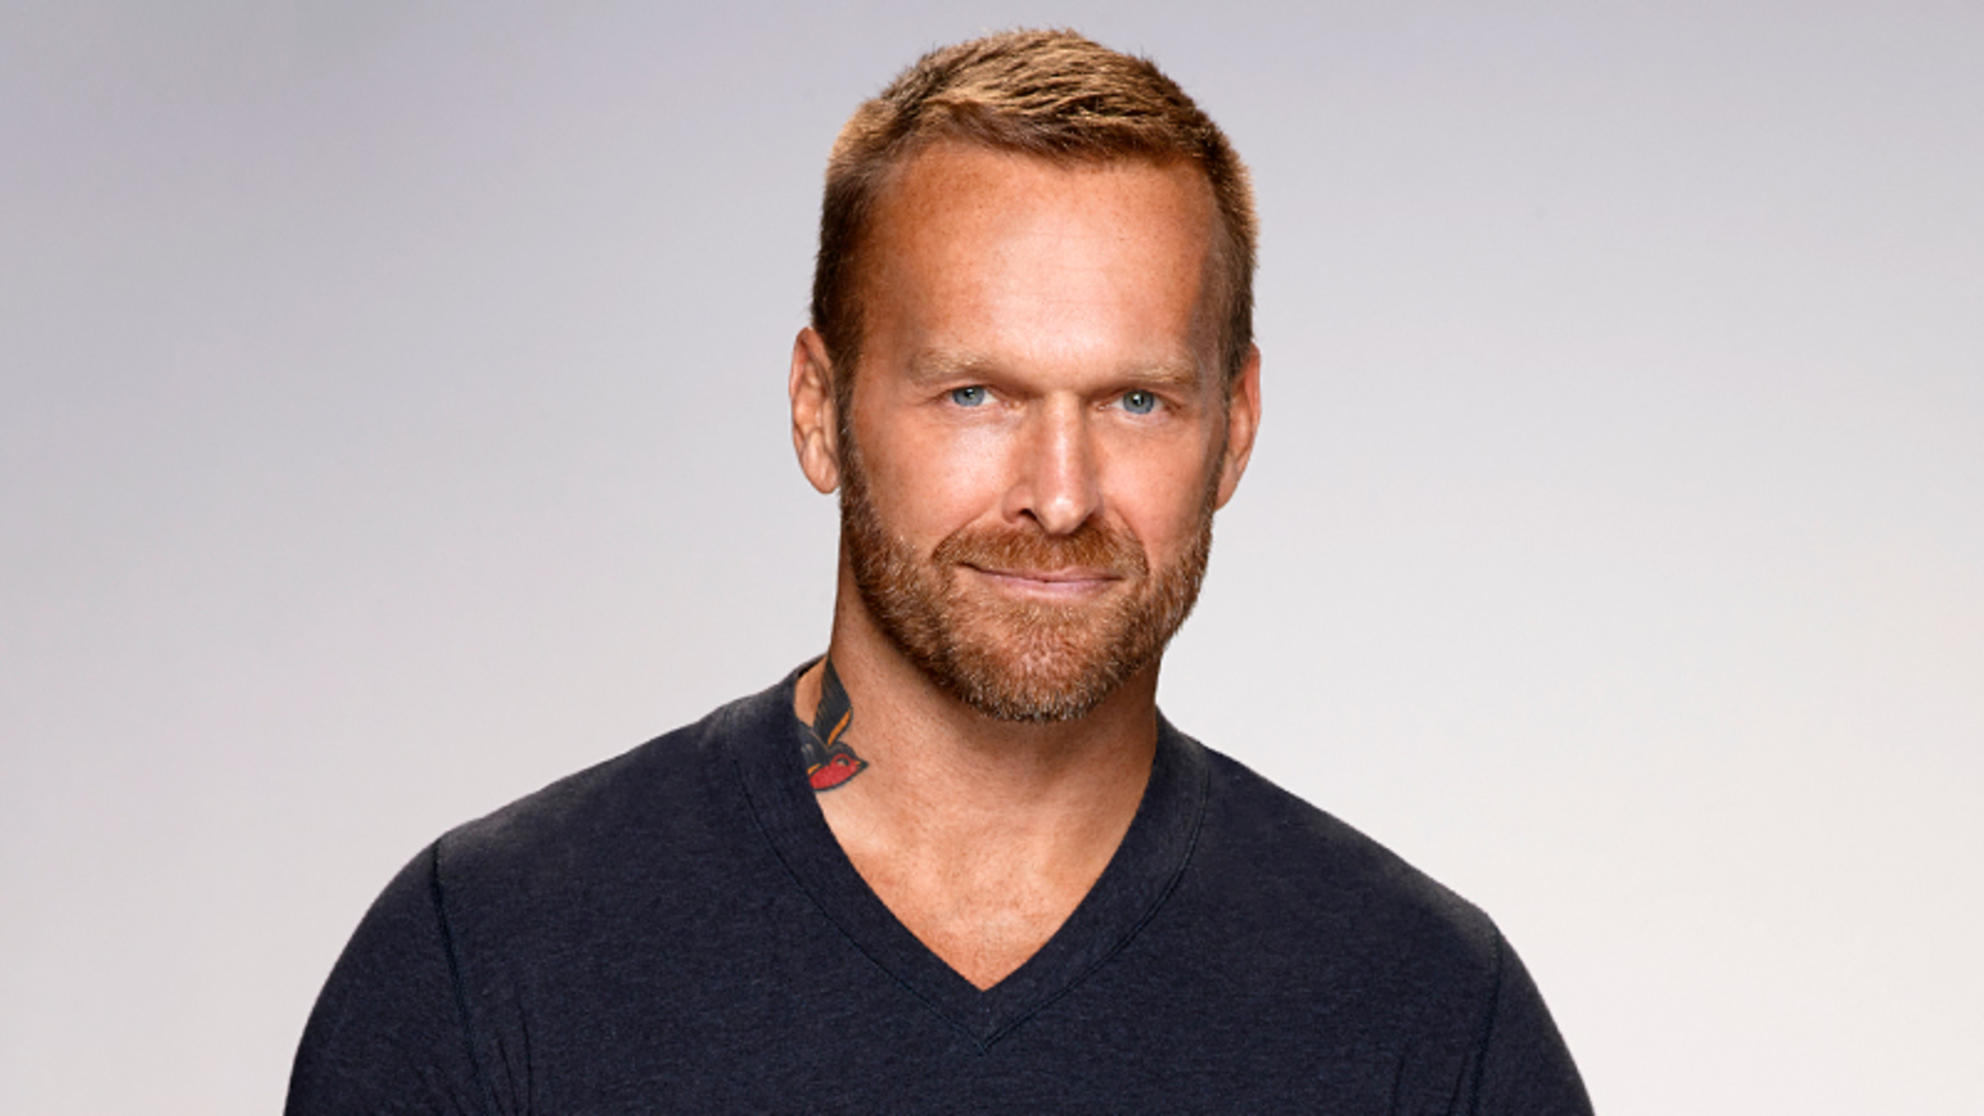 Bob Harper Reveals He Only Survived 'Widowmaker' Heart Attack at 51 Because Doctors Were in Gym